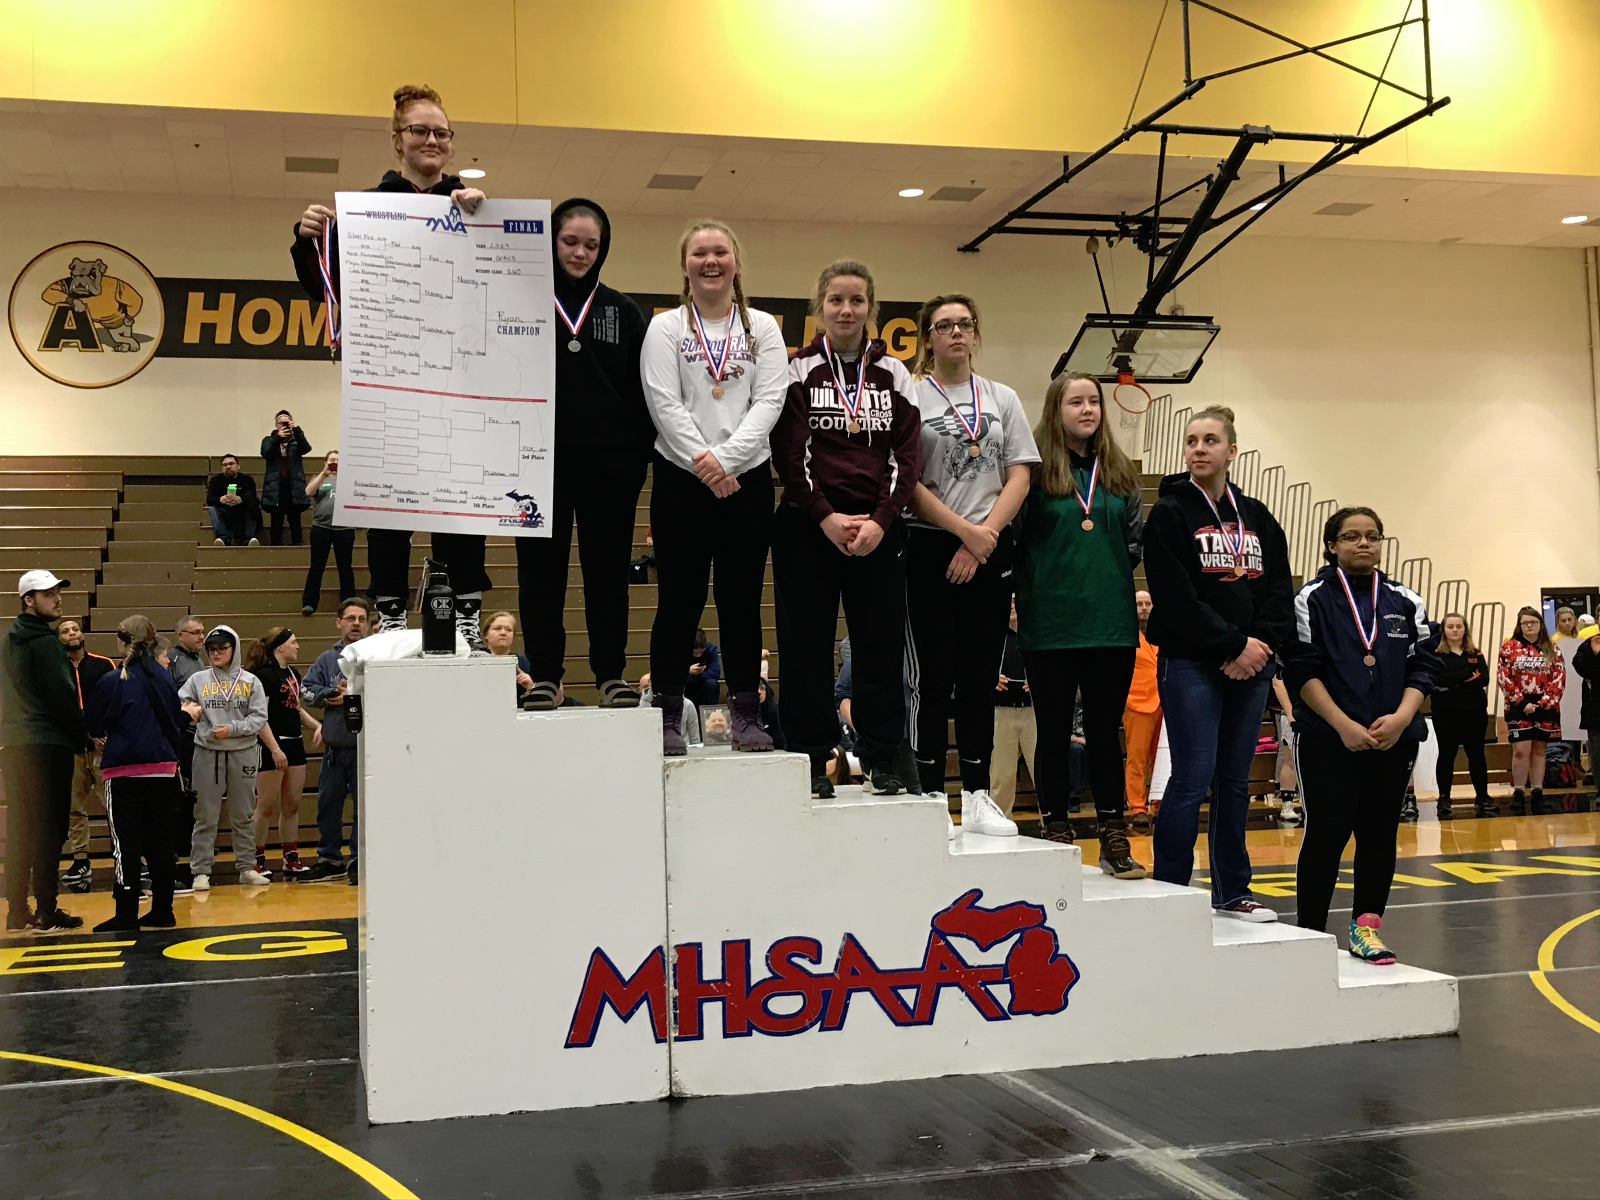 Silver Fox Places Third at Girls State Wrestling